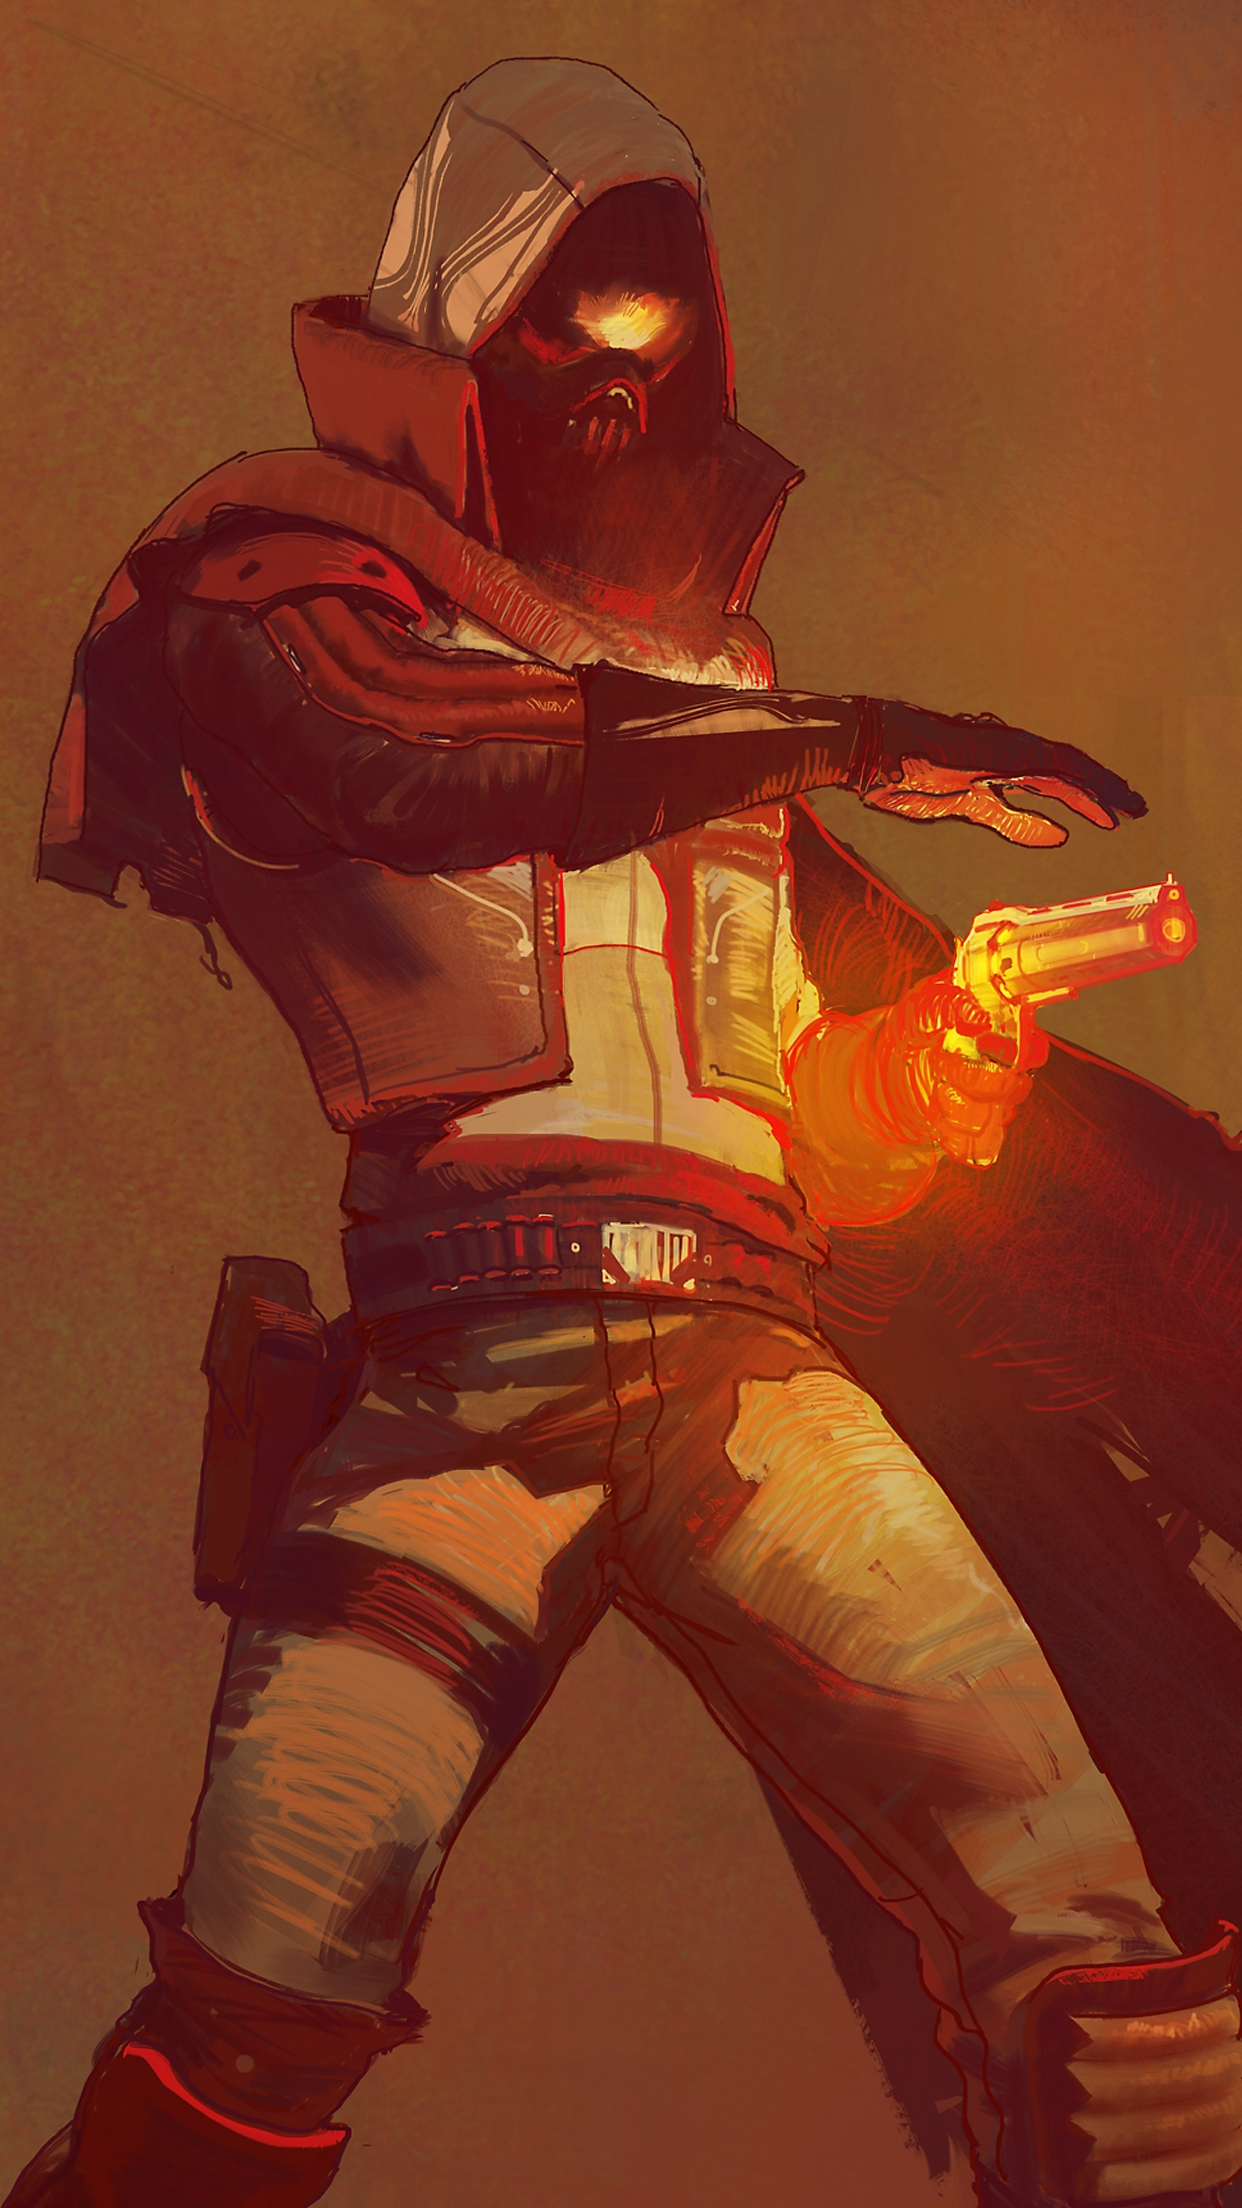 Destiny 2 mobile wallpaper